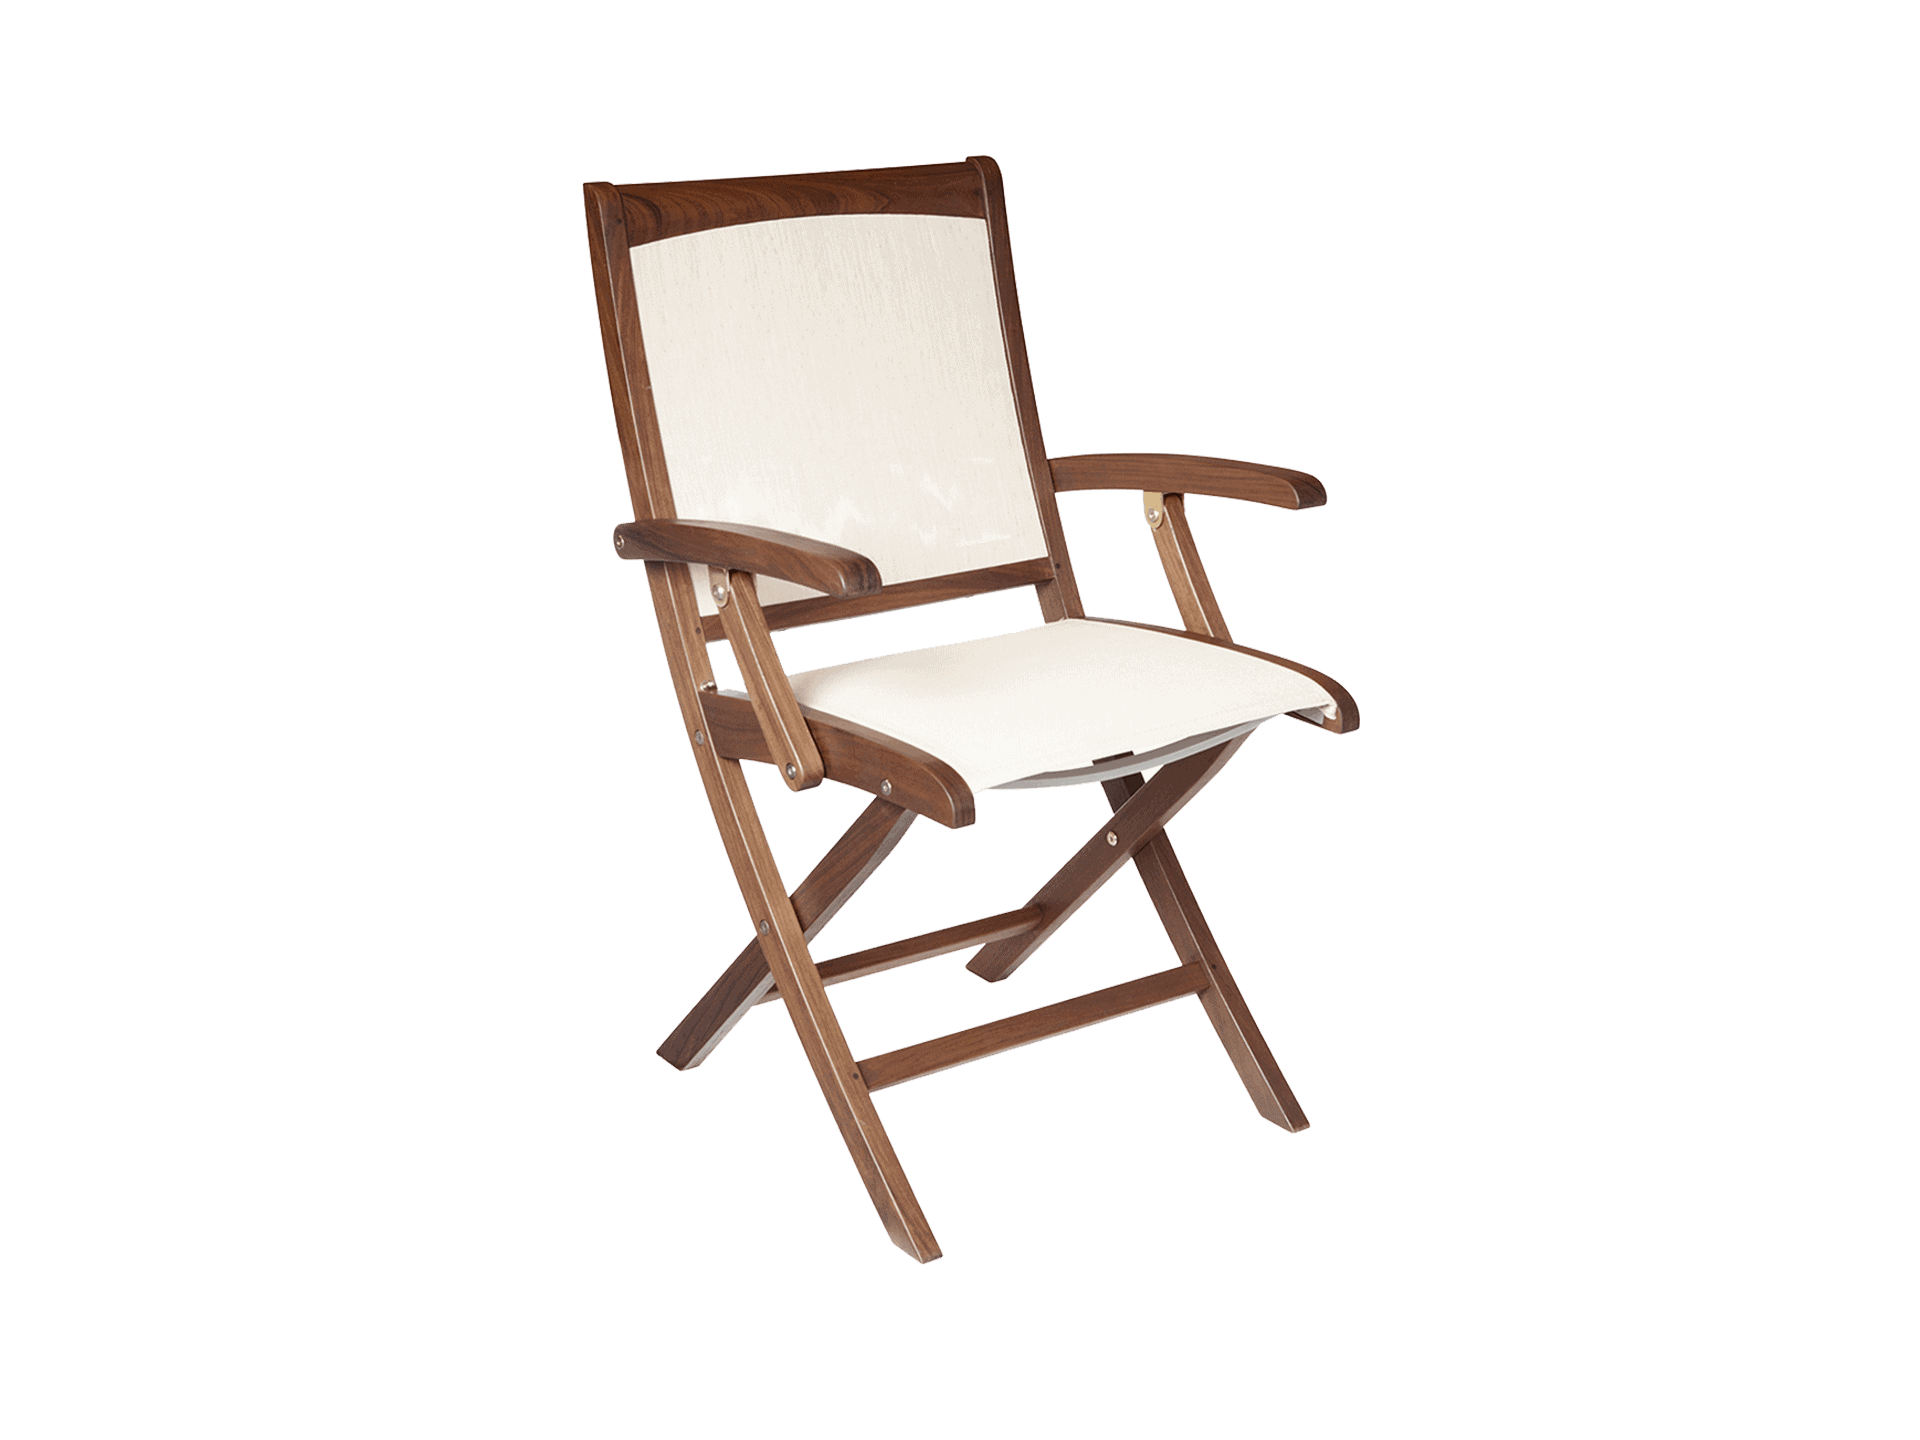 Topaz Folding Natural Sling Chair - Jensen Leisure Furniture